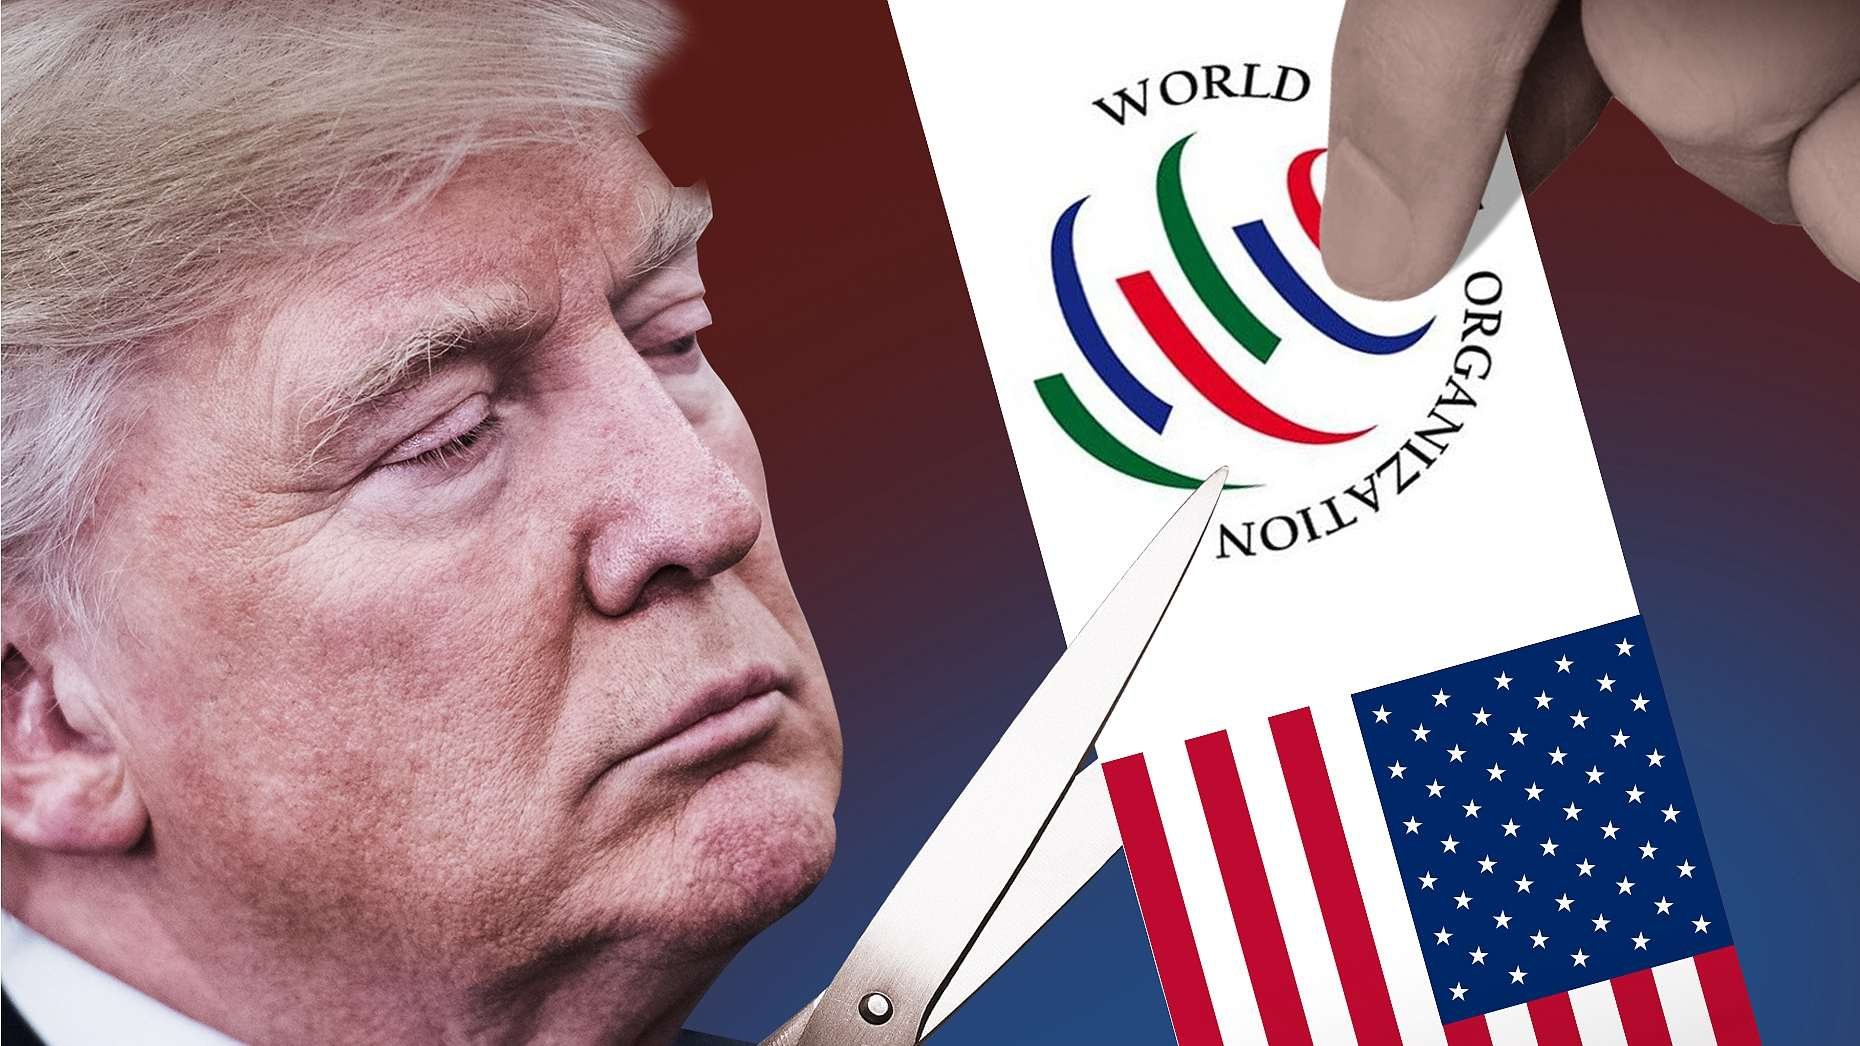 Trump's trade war is a tactic competition rather than market competition